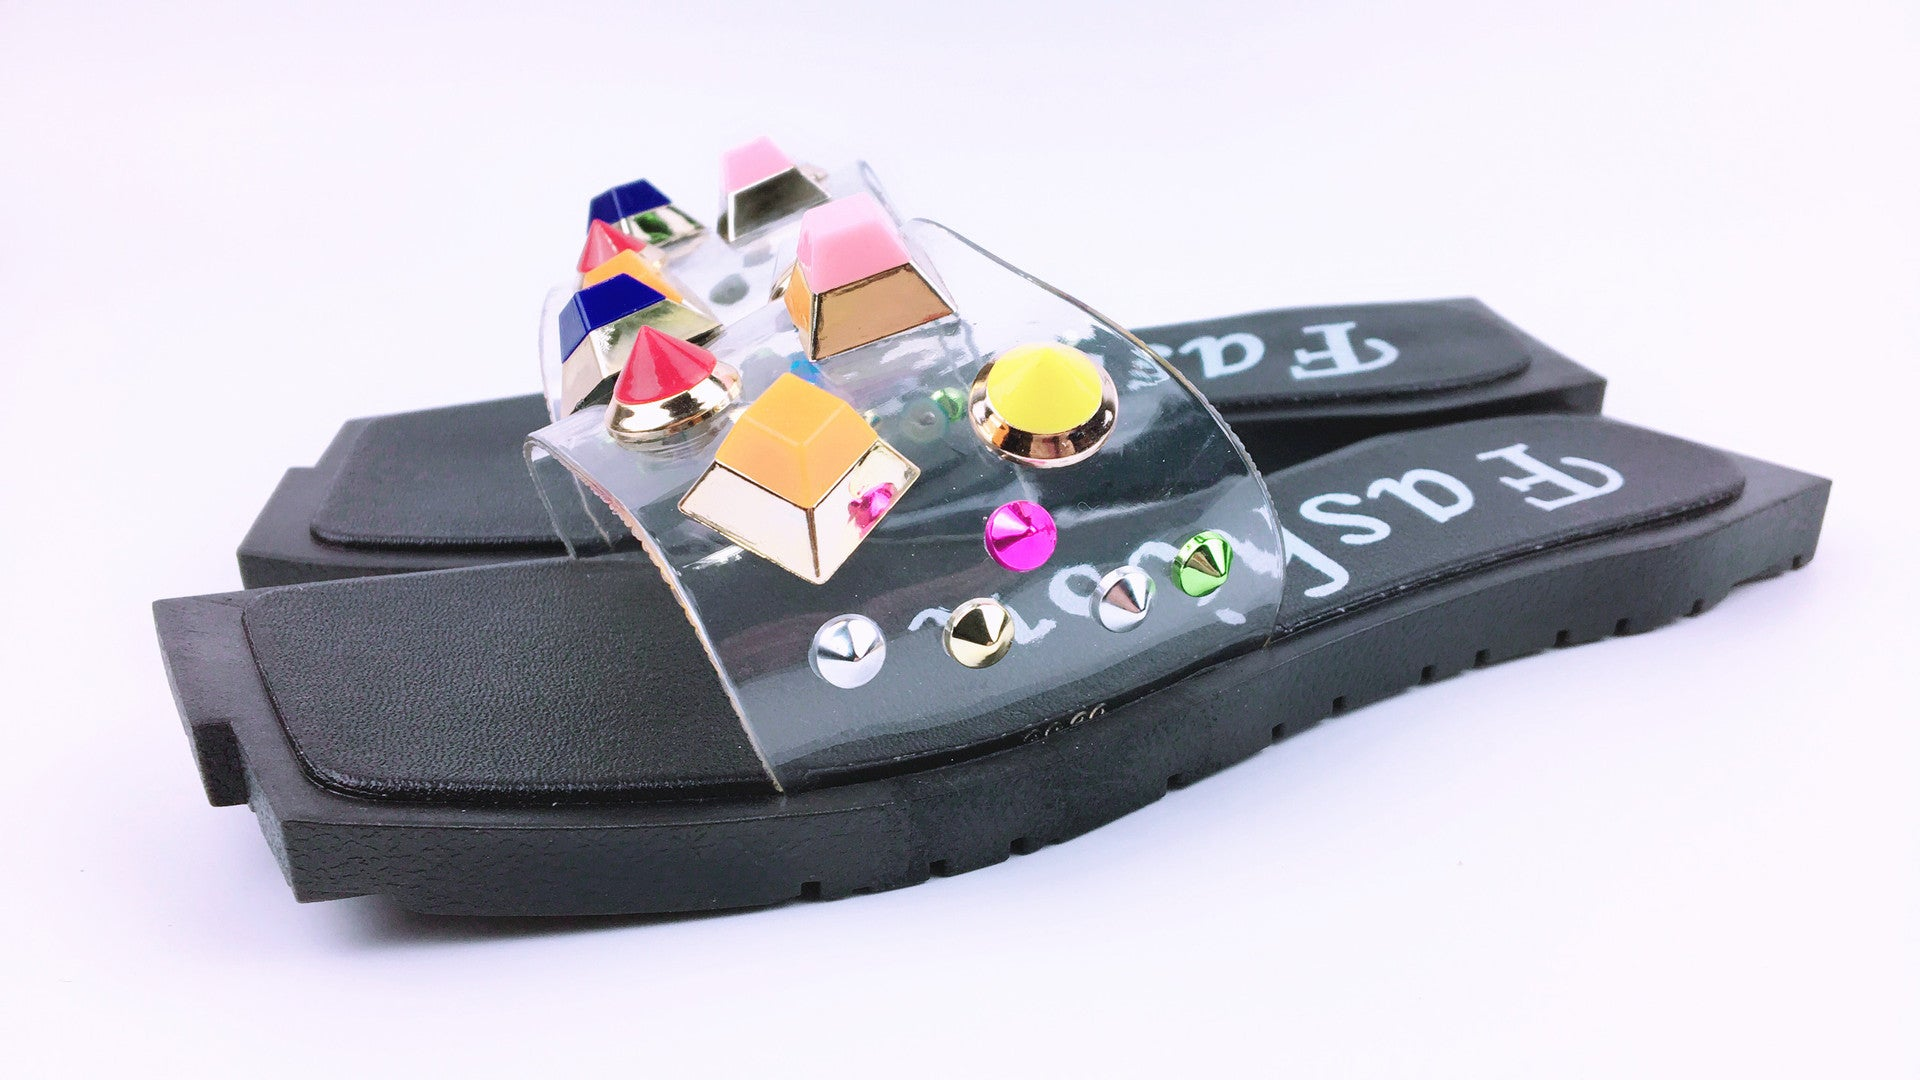 2a2452871e9e Women with sandals and slippers have a straight slope heel and a thick  platform shoe p4118